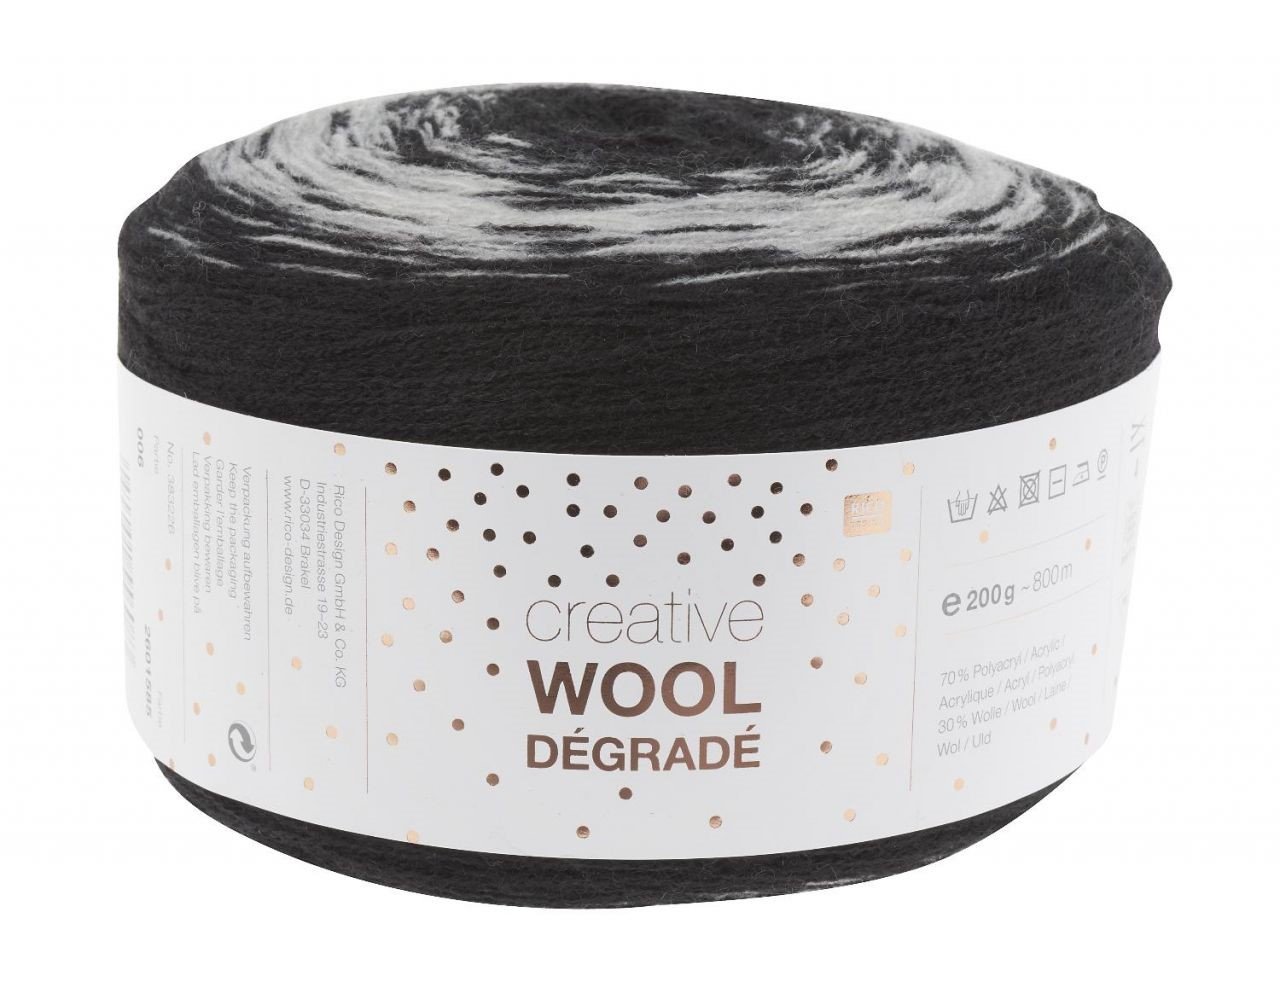 6 Creative wool degrade rico.jpg